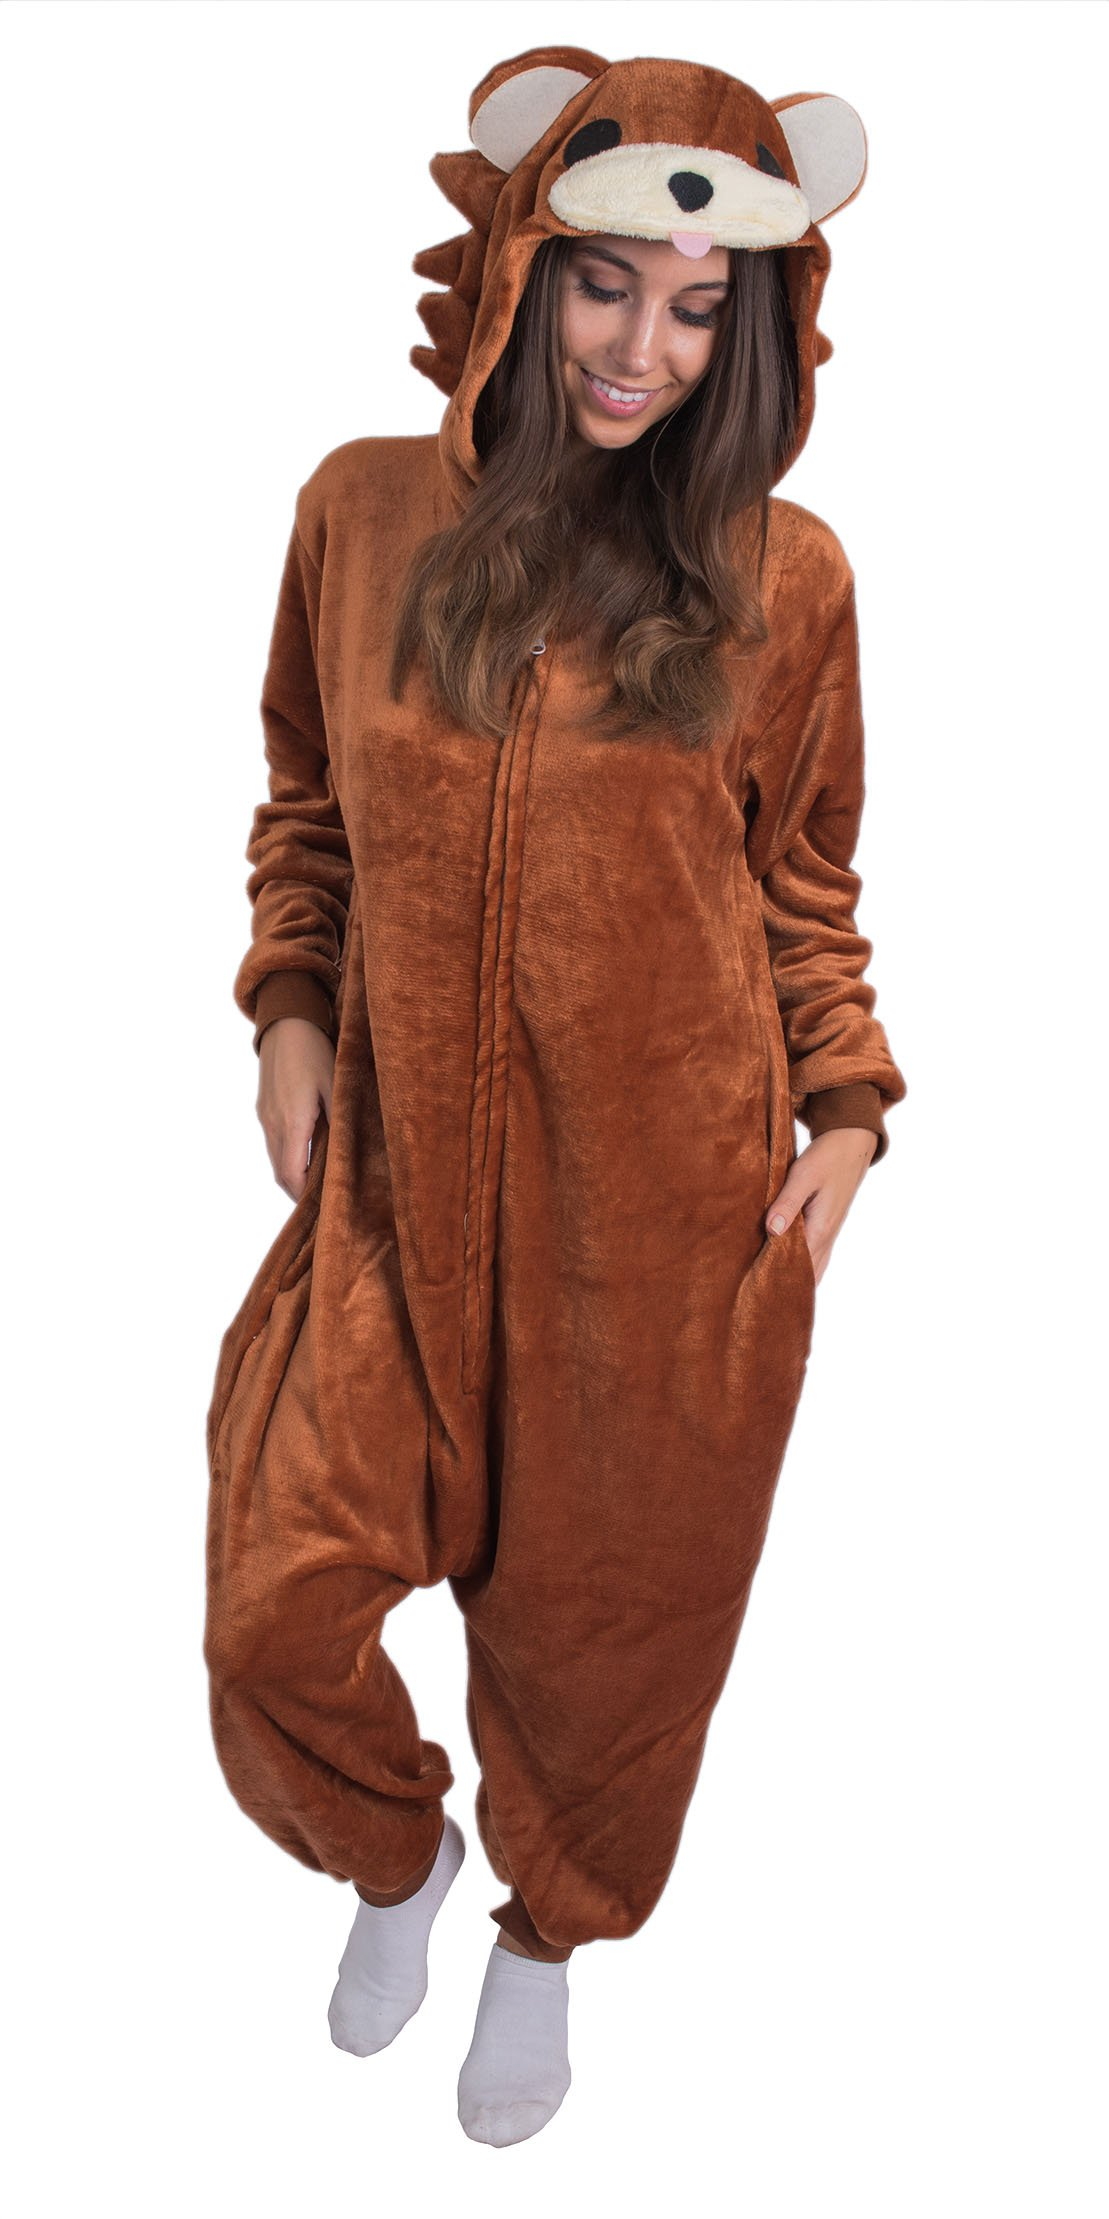 Bad Bear Brand Adult Onesie Brown Bear Animal Pajamas Comfortable Costume With Zipper and Pockets (X-Large)